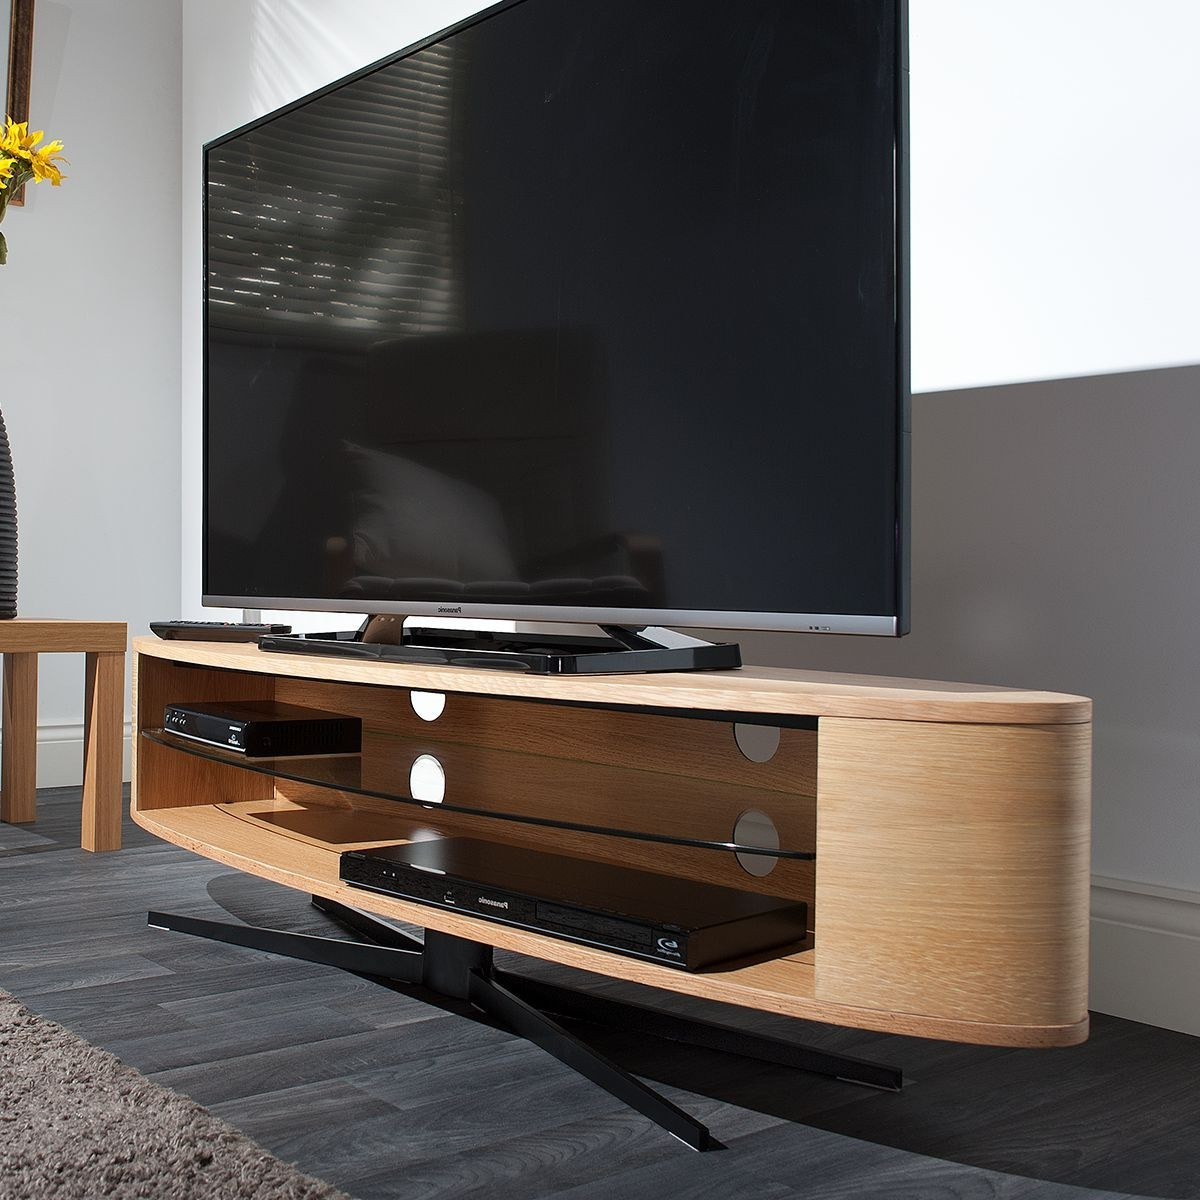 Techlink Tv Stands – Orderflovent In Most Current Techlink Tv Stands (View 20 of 20)